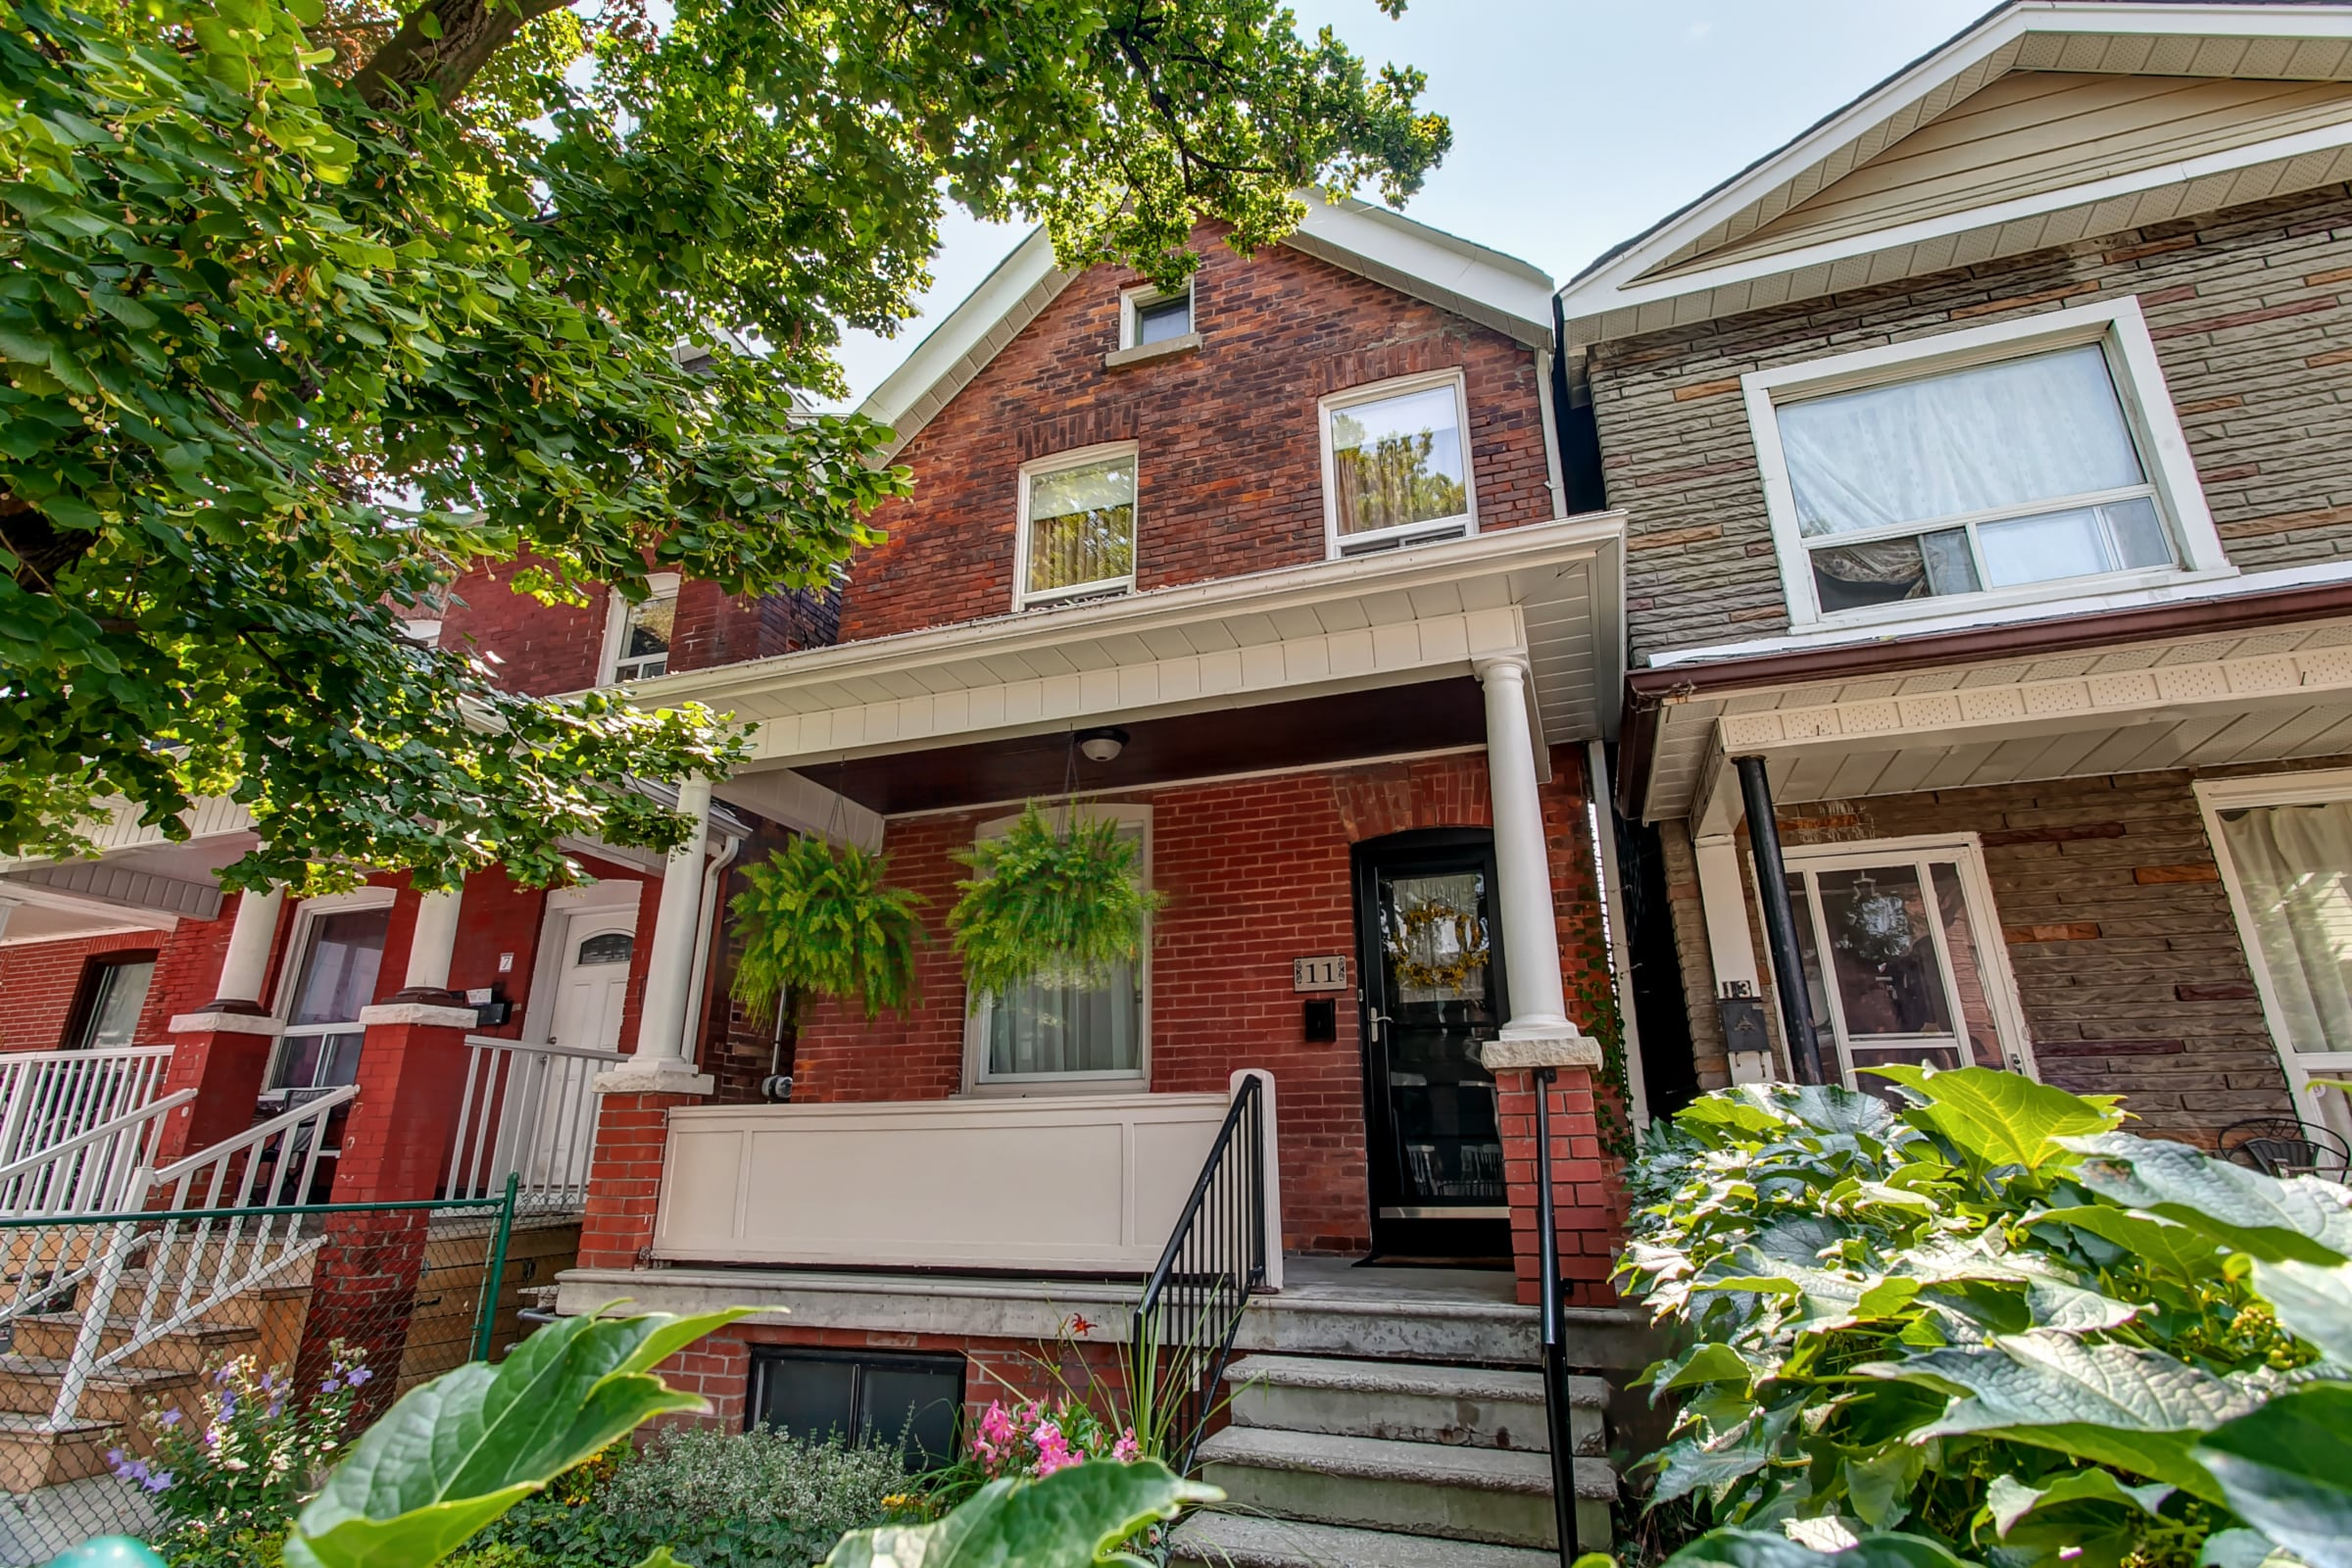 11 Chesley Ave: Coming Soon to Toronto MLS | Kate Watson